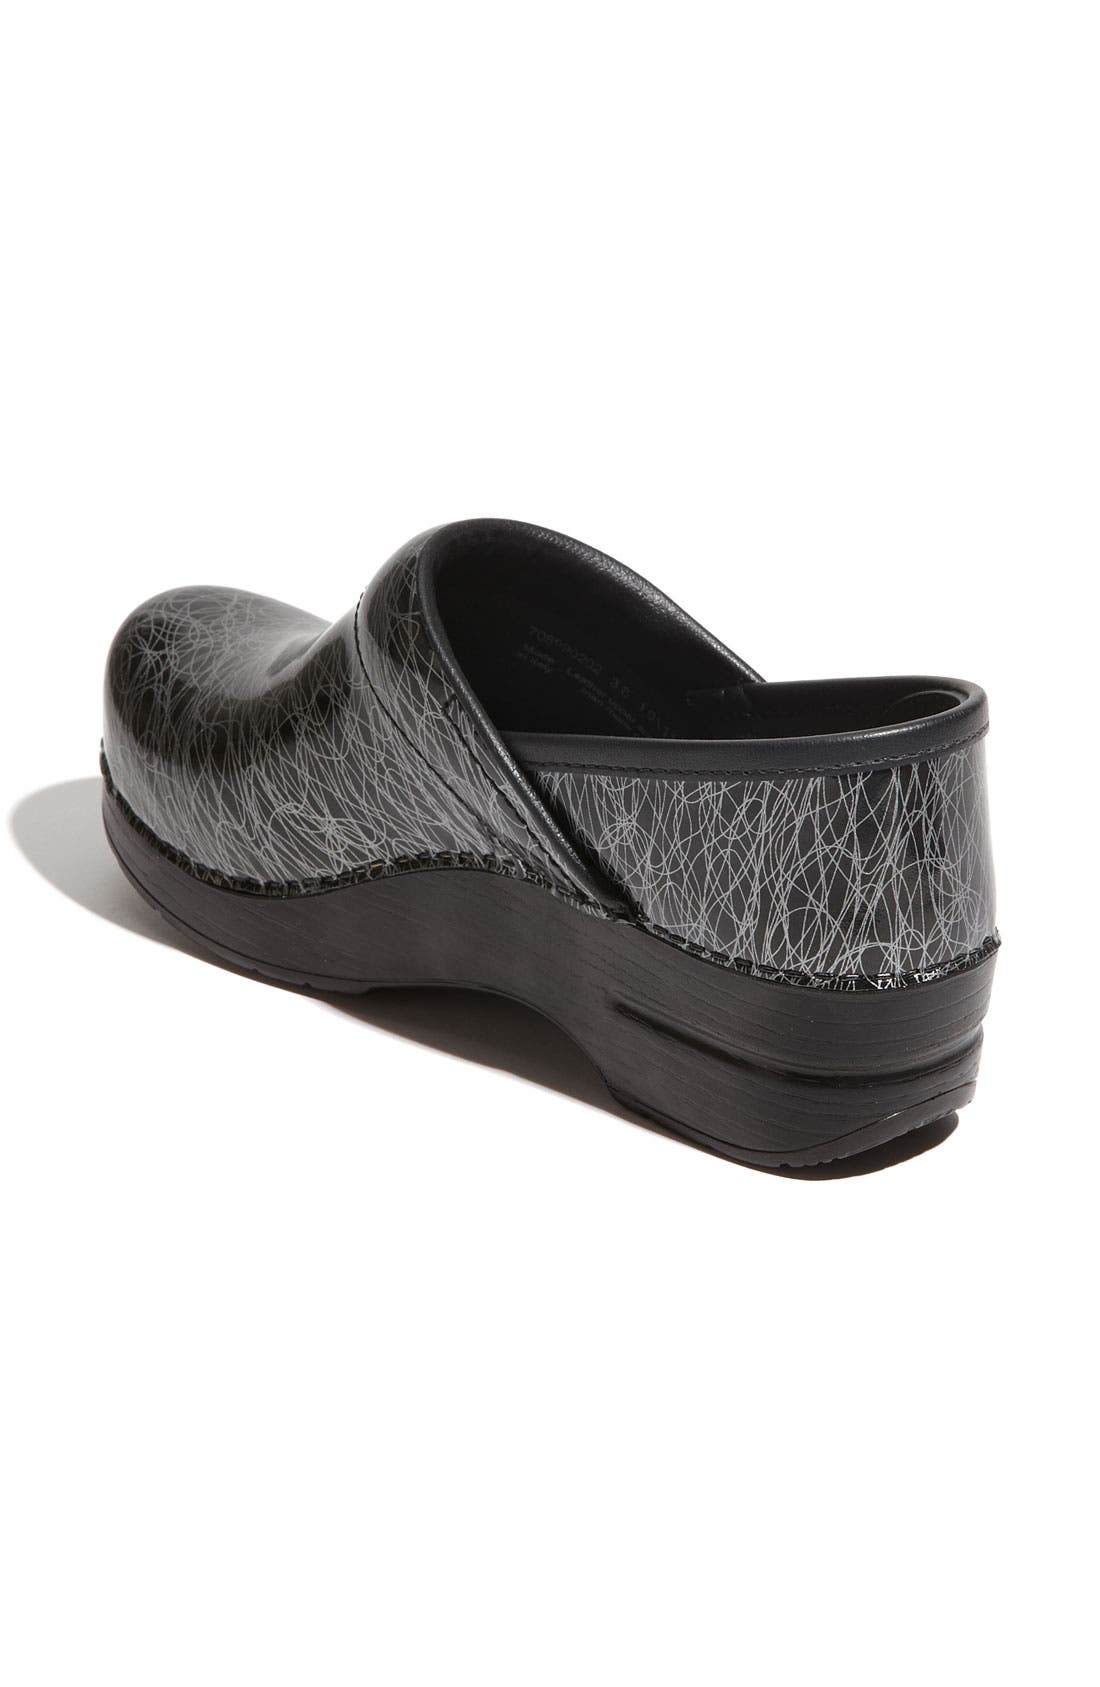 DANSKO, 'Professional Specialty' Clog, Alternate thumbnail 2, color, 001